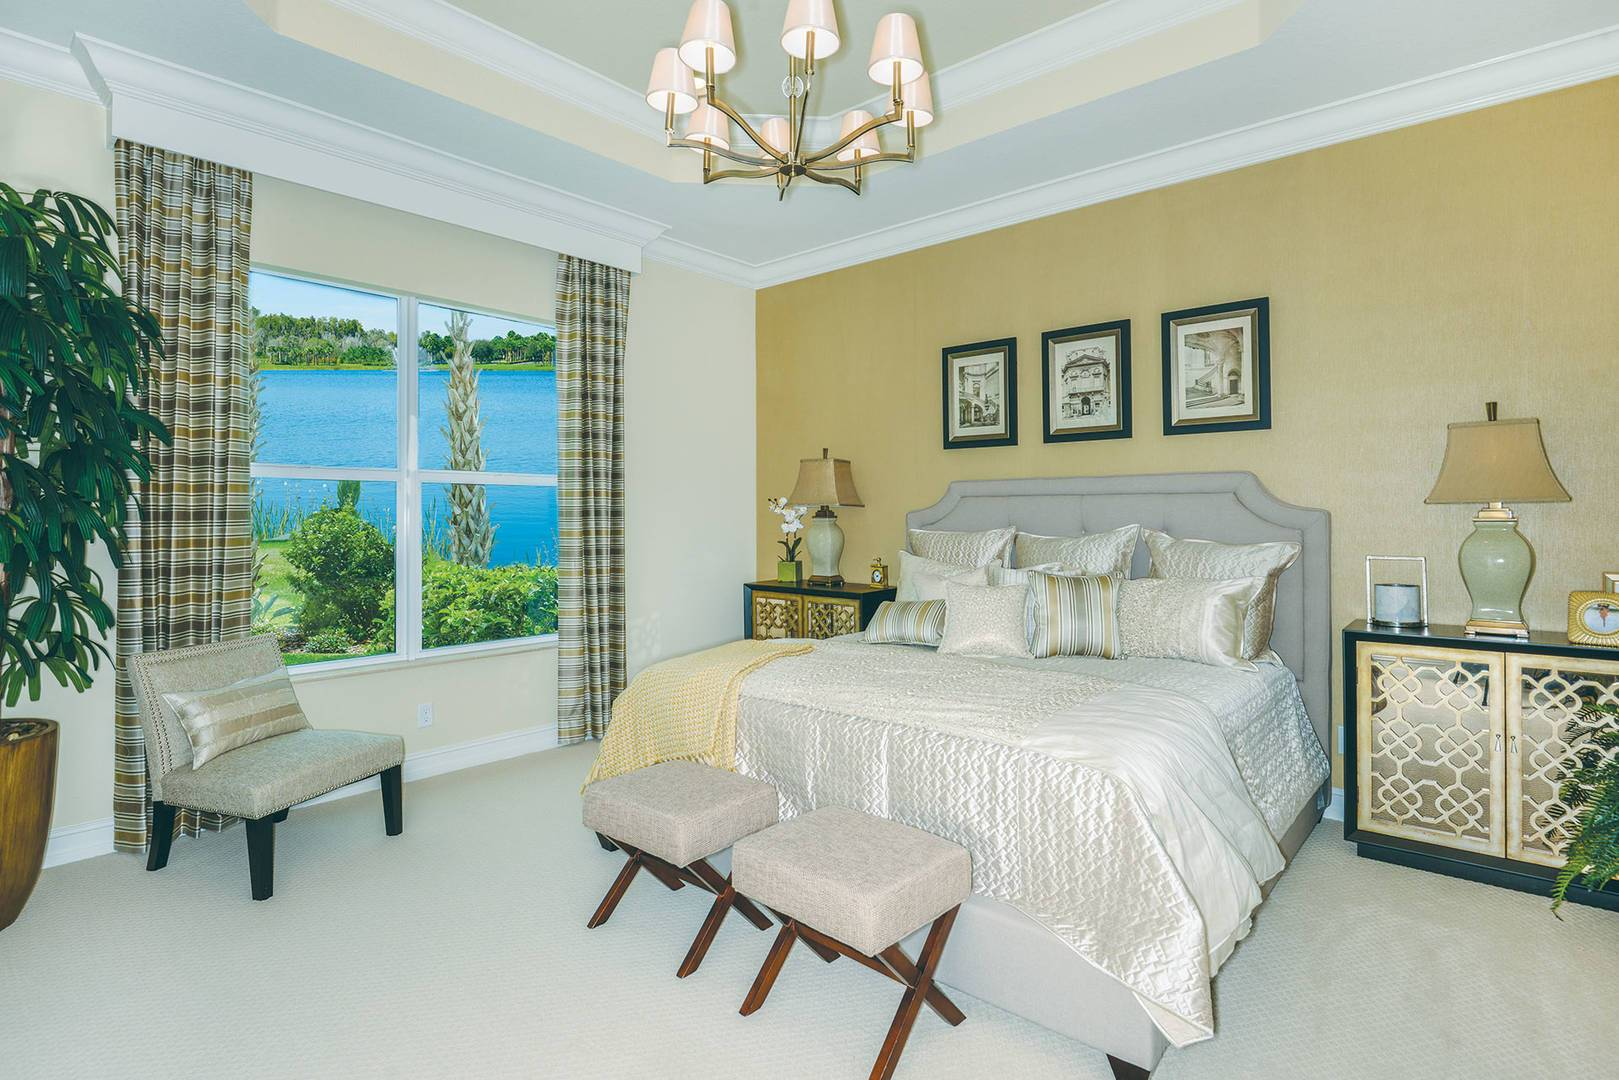 Bedroom featured in the Marsala By GL Homes in Tampa-St. Petersburg, FL